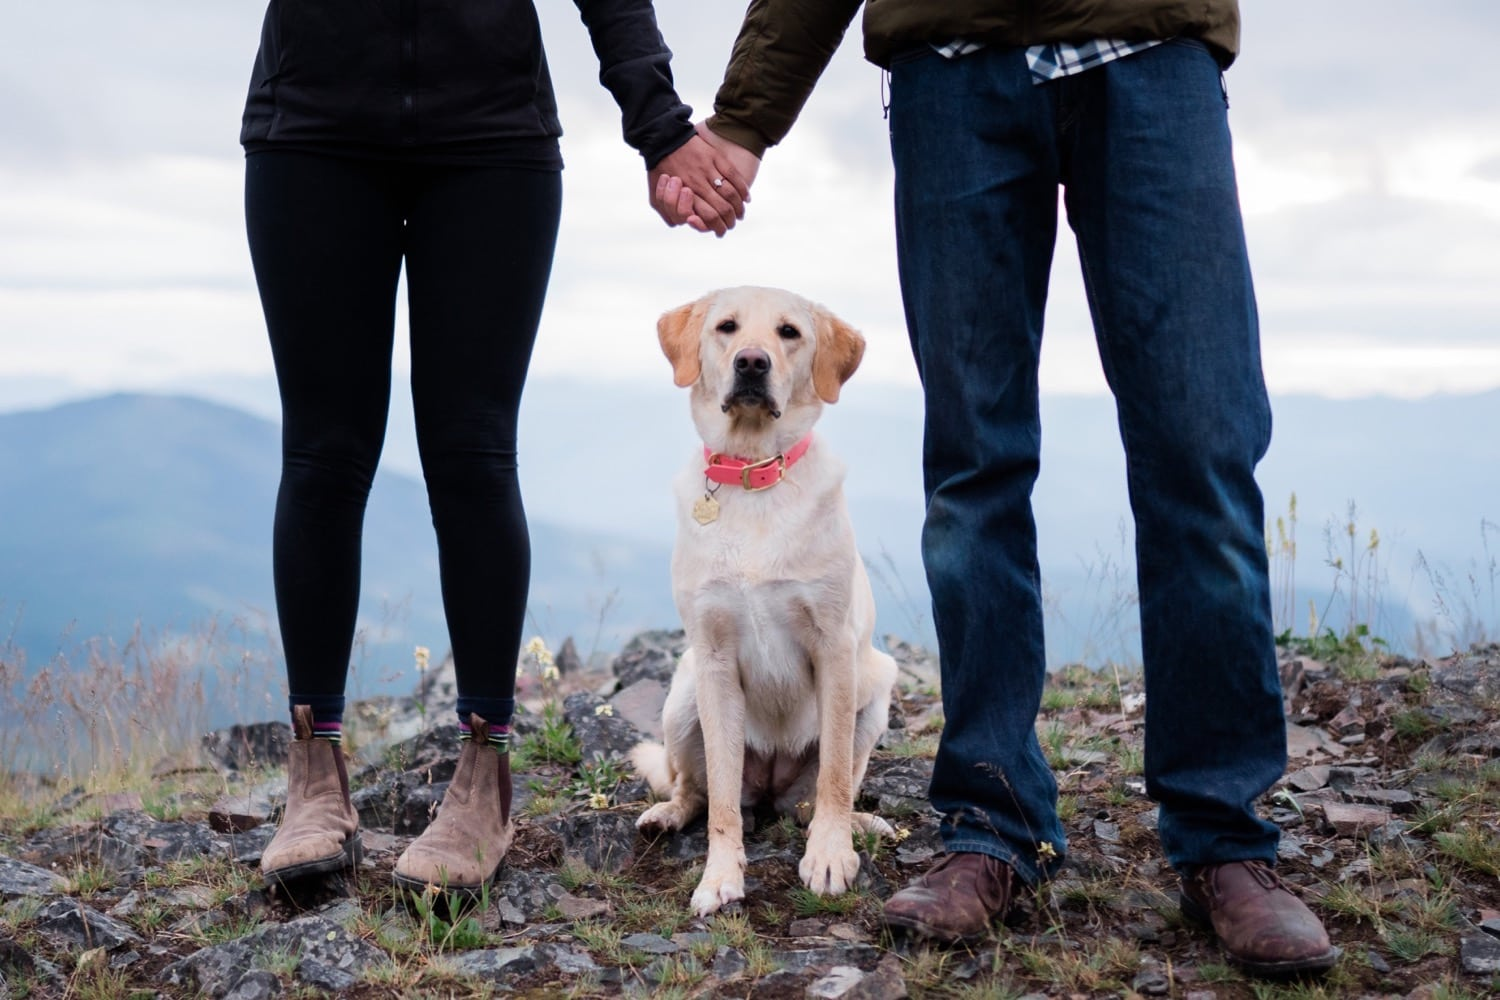 A detail shot of the engaged couple holding hands with the dog sitting between them looking at the camera